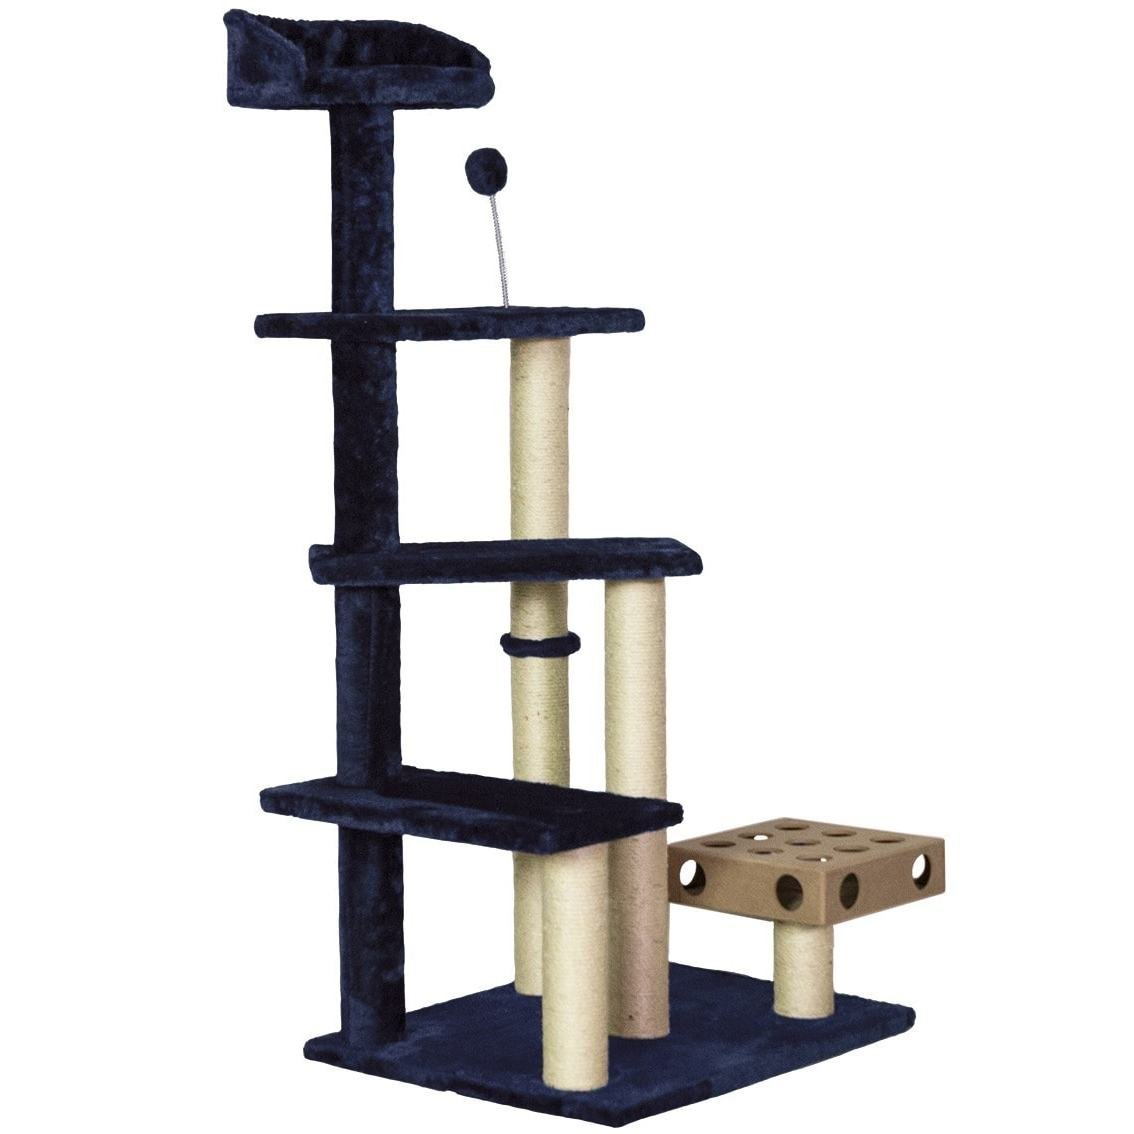 1 Piece Navy Blue 49.5 High Comfort Scratcher Cat Condo, Blue Stairs Pet Tree House Kitty Perch Bed, Stable Playground Climbing Platforms Jingle Bell Ball Iq Toy Elevated Removable Cover, Sisal Rope